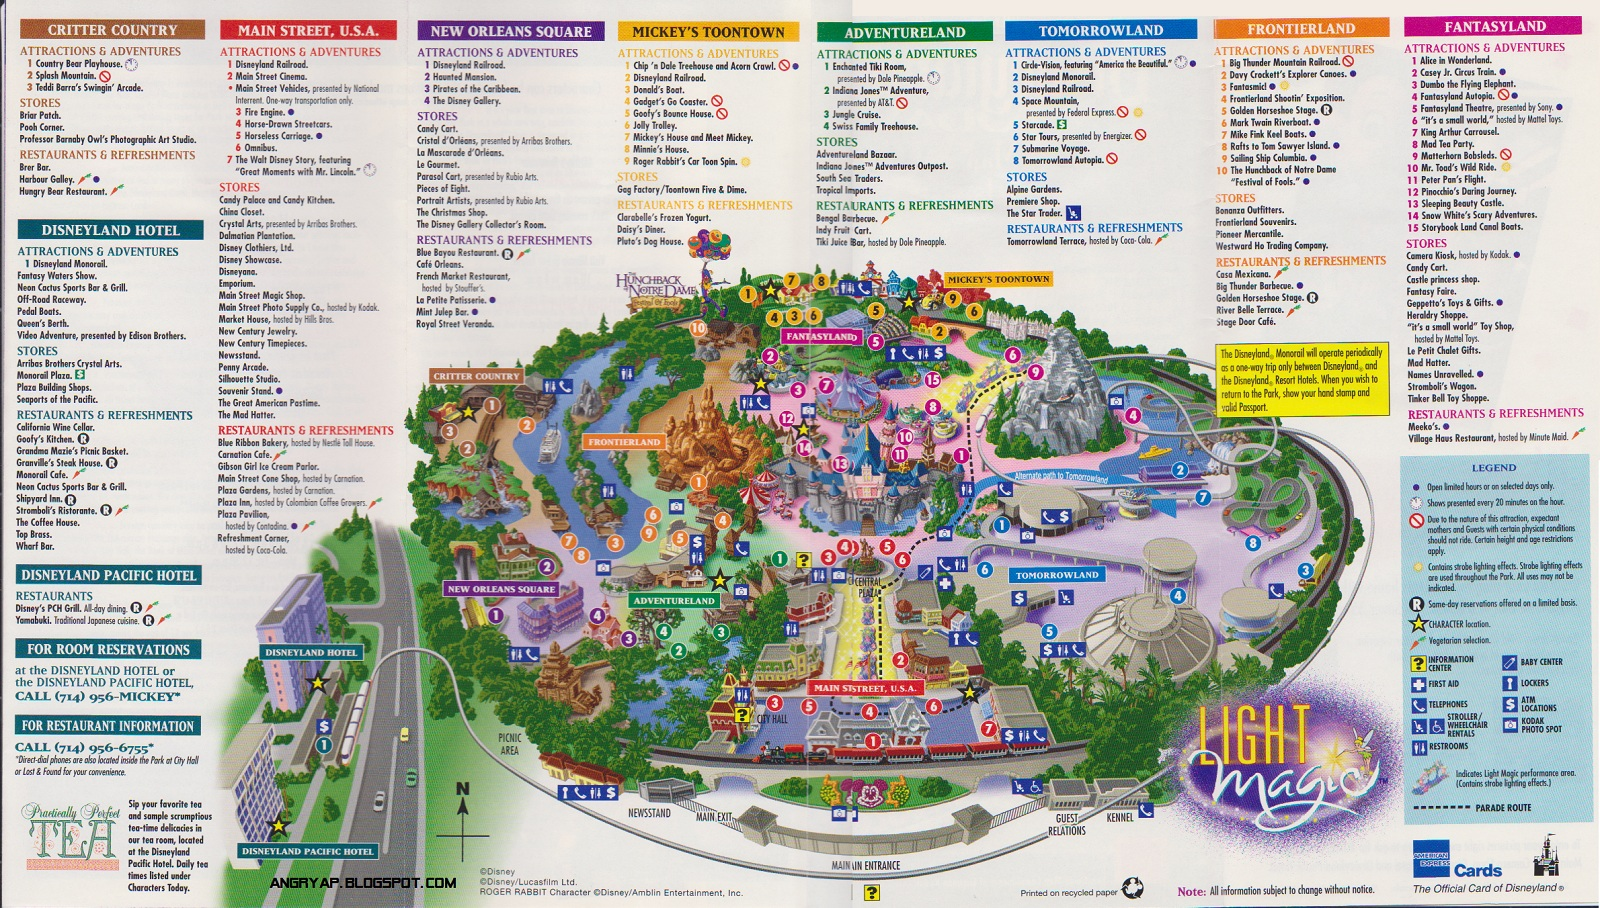 Angry ap disneyland and walt disney world nostalgia disneyland angry ap disneyland and walt disney world nostalgia disneyland guide map from 1997 publicscrutiny Images